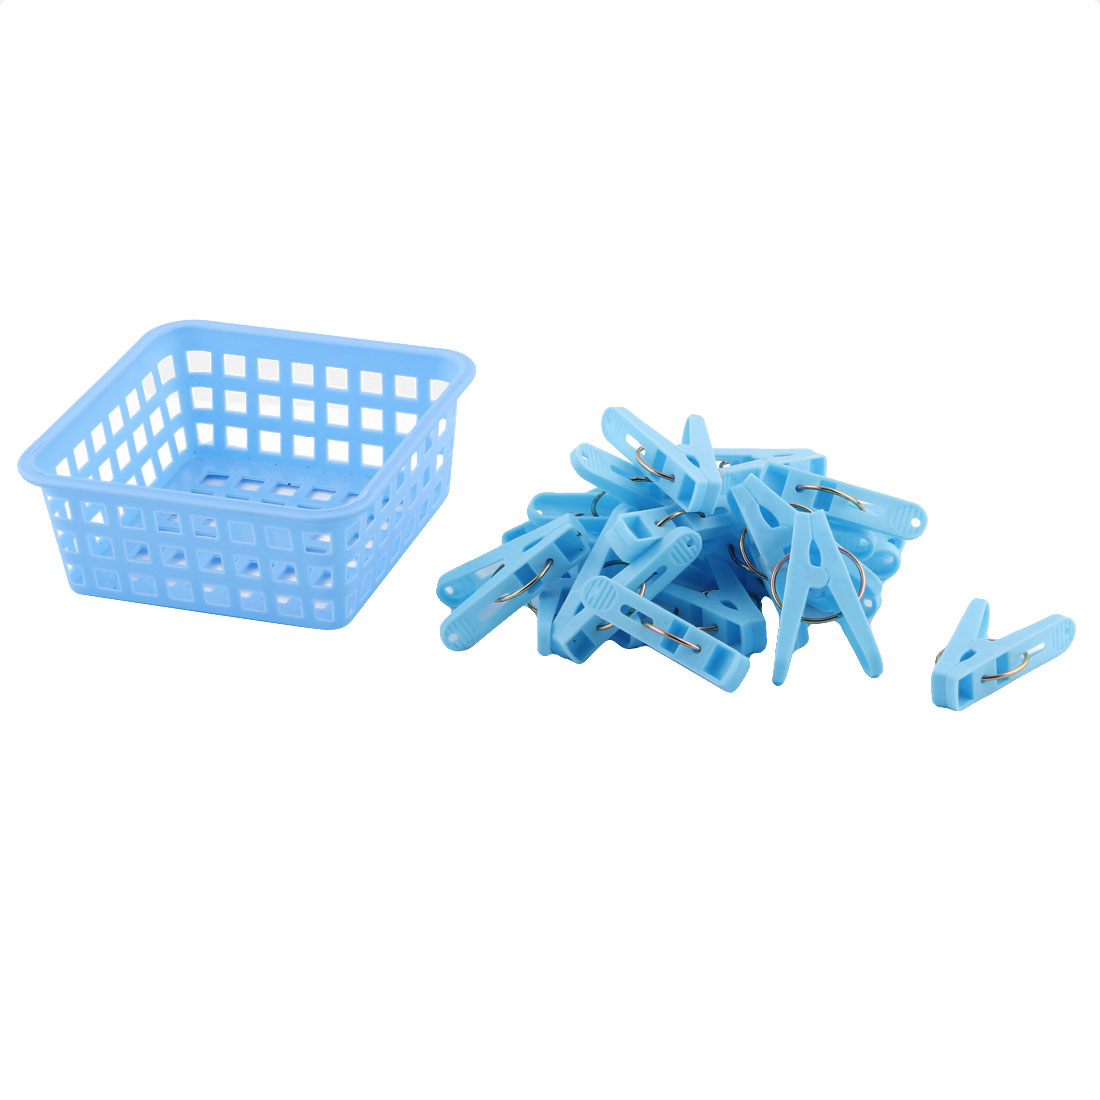 Home Clothes Hanging Pegs Clothespins Hanger Clips Blue 20pcs w Storage Basket